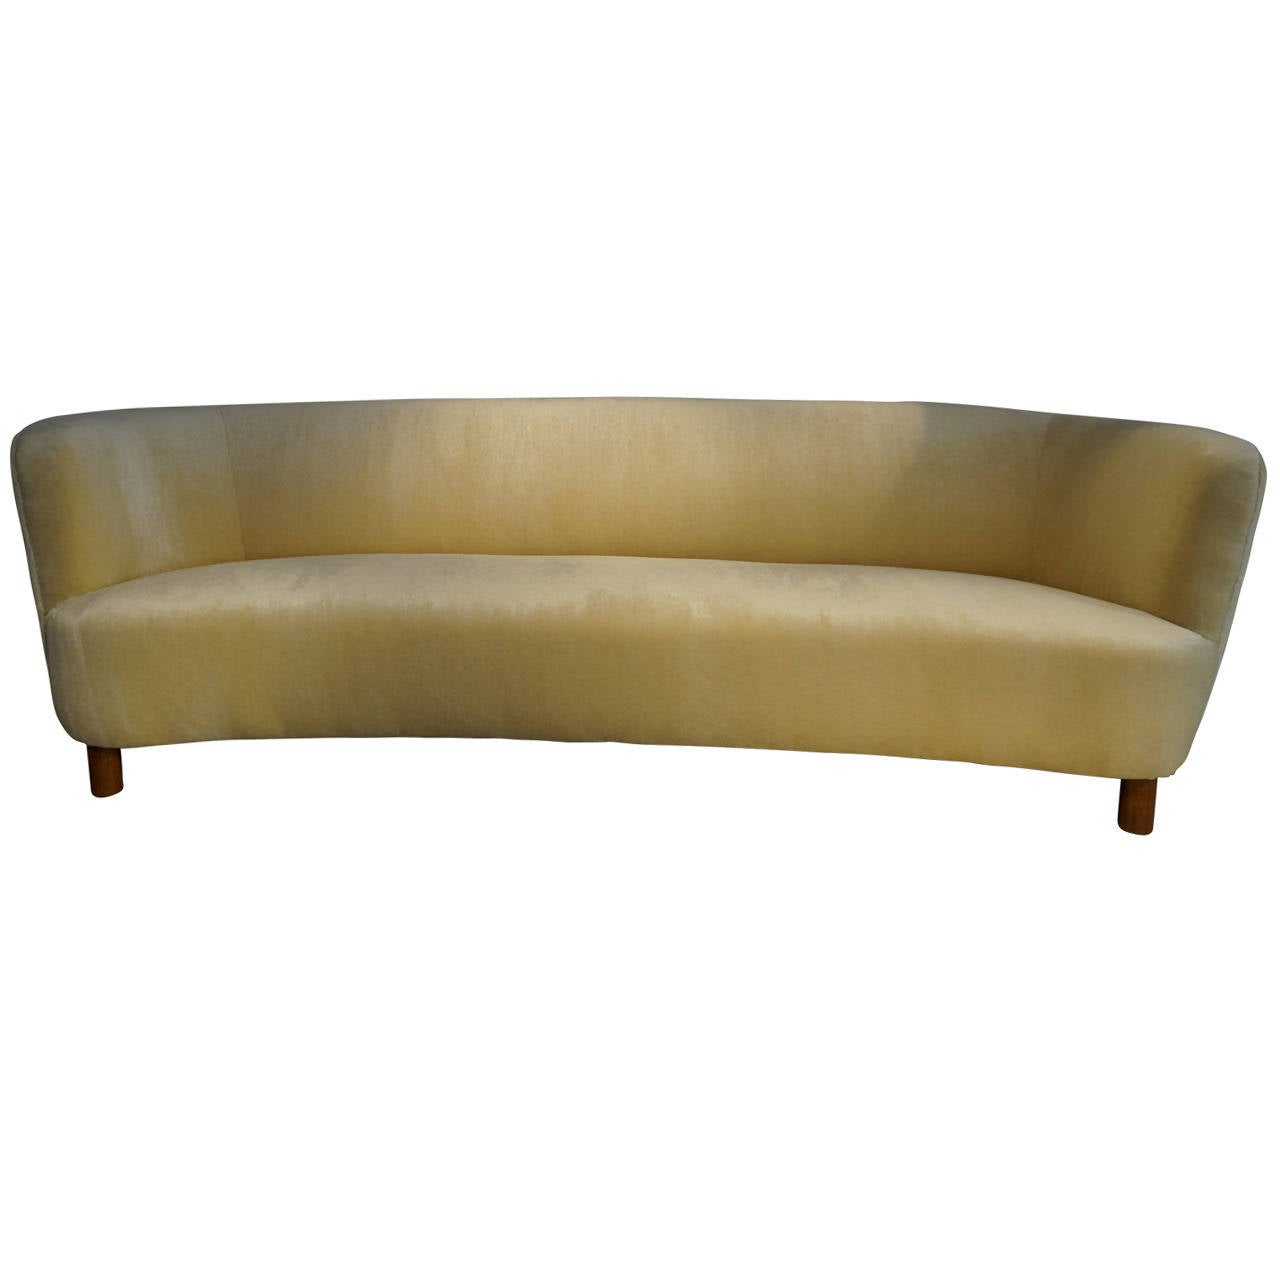 mogens lassen curved sofa at 1stdibs. Black Bedroom Furniture Sets. Home Design Ideas